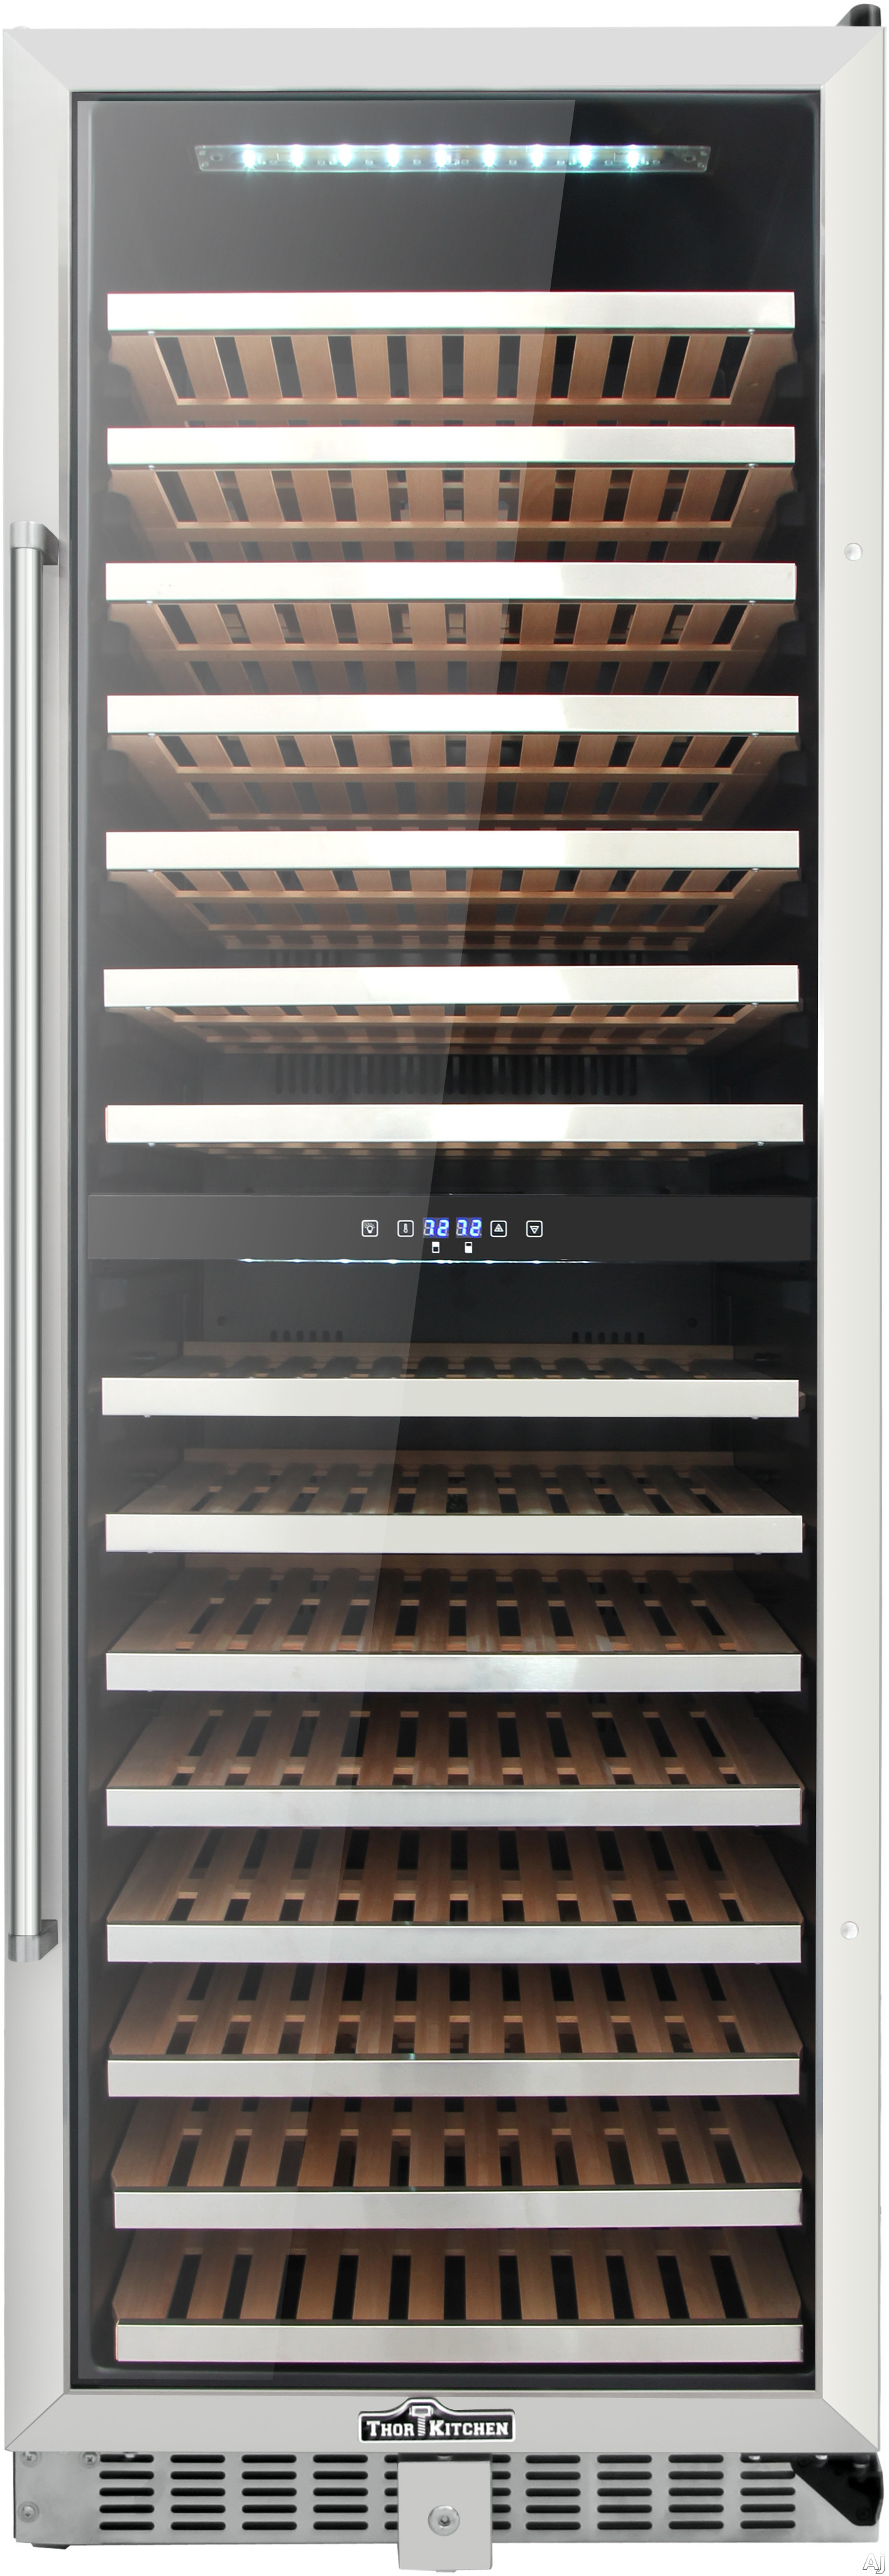 Thor Kitchen HWC2403U 24 Inch Wine Cooler with 156-Bottle Capacity, Dual Zones, Tempered and Smoked Double Pane Glass Door, Wooden Shelves, Reversible Door, White LED Interior Light, Touchpad Digital Controls, Compressor Cooling, Adjustable Thermostat and